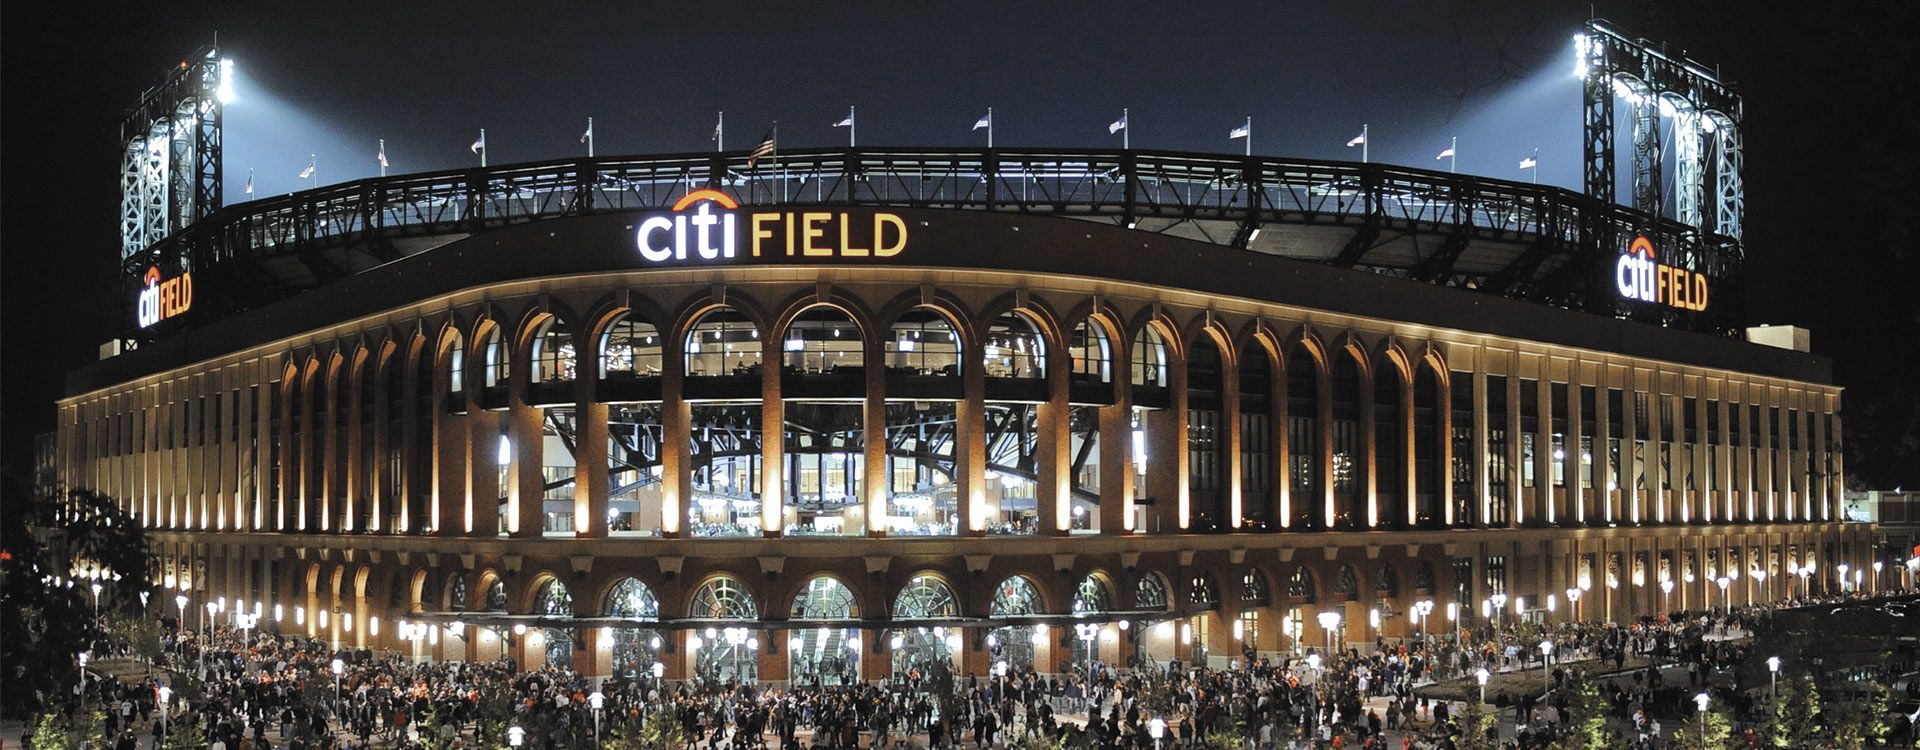 bnr-Citi-Field_Sports-and-Stadia